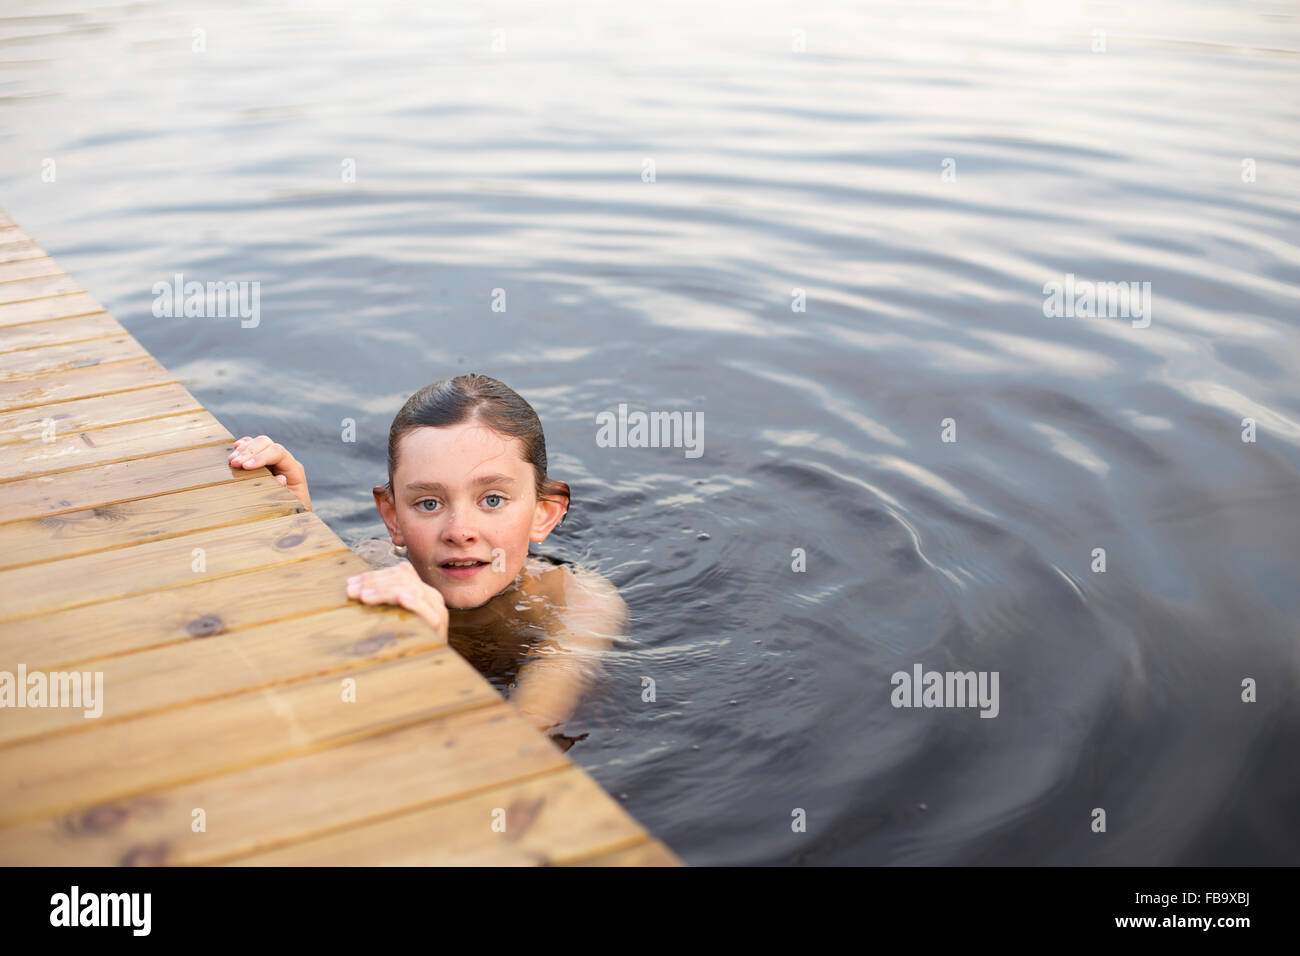 Sweden, Smaland, Braarpasjon, Portrait of boy (12-13) in lake touching wooden jetty - Stock Image